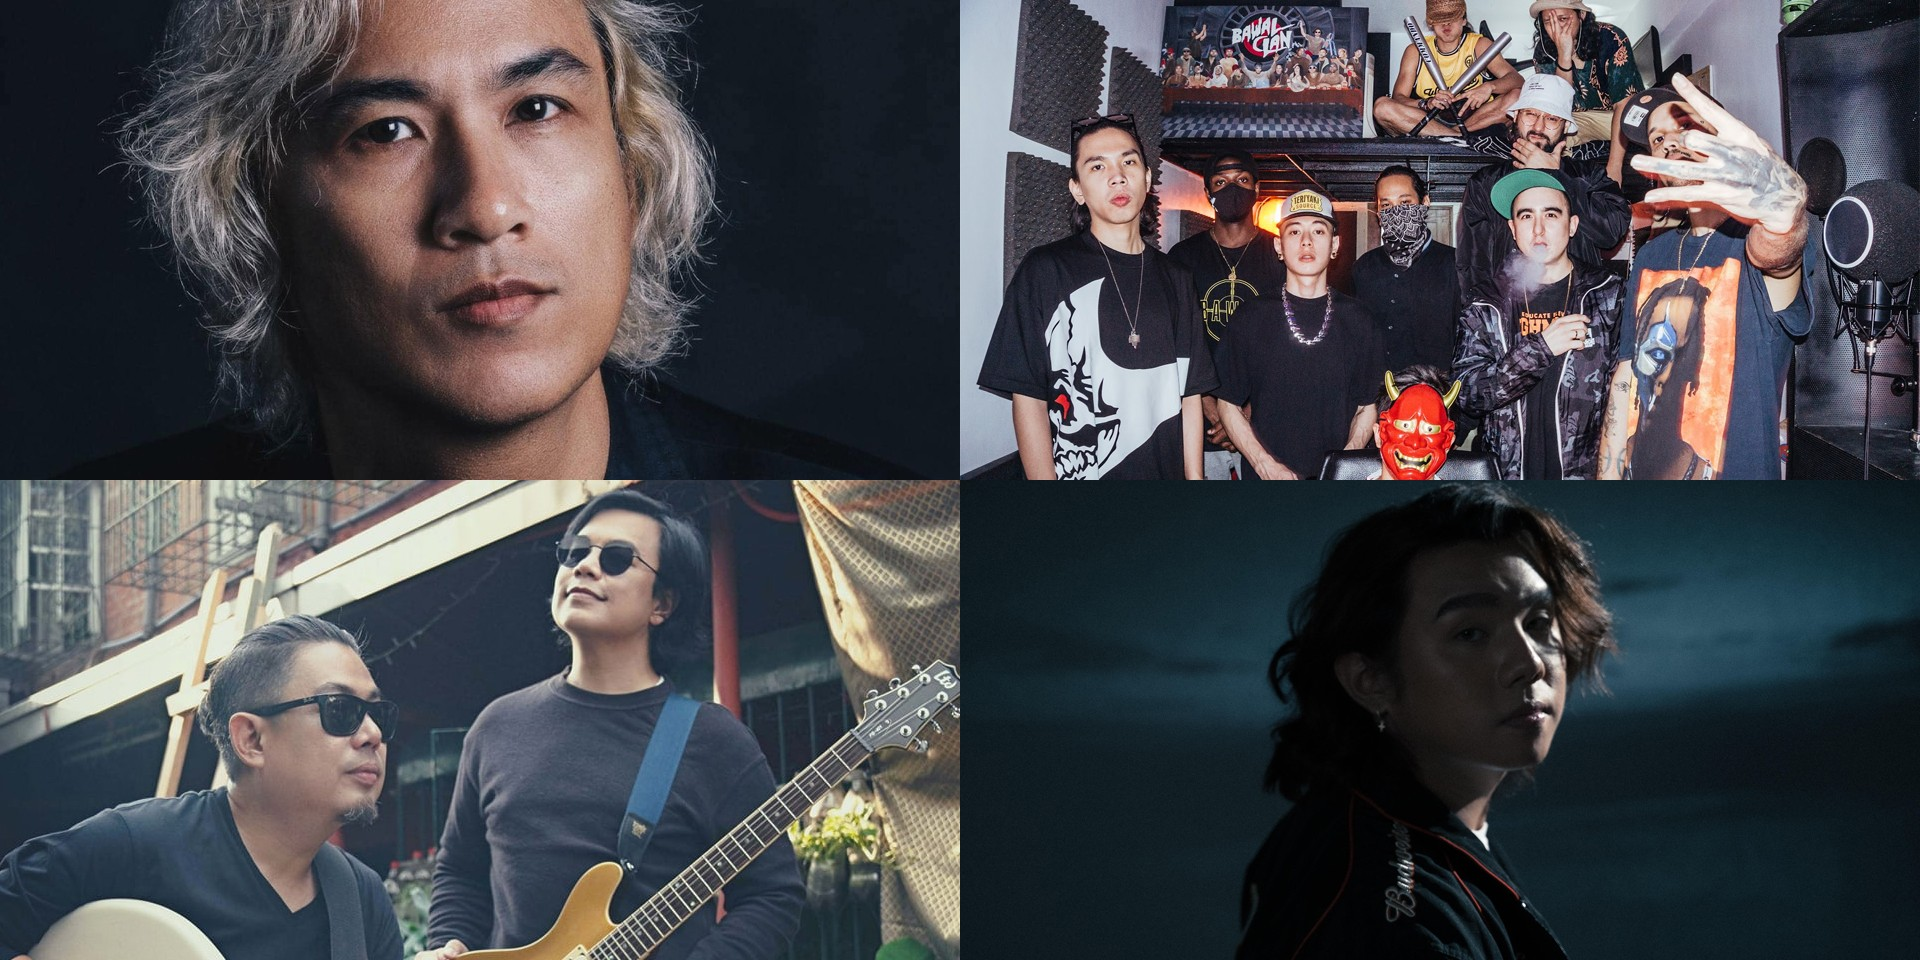 Ely Buendia, Bawal Clan, SUZARA, Zack Tabudlo, and more release new music – listen